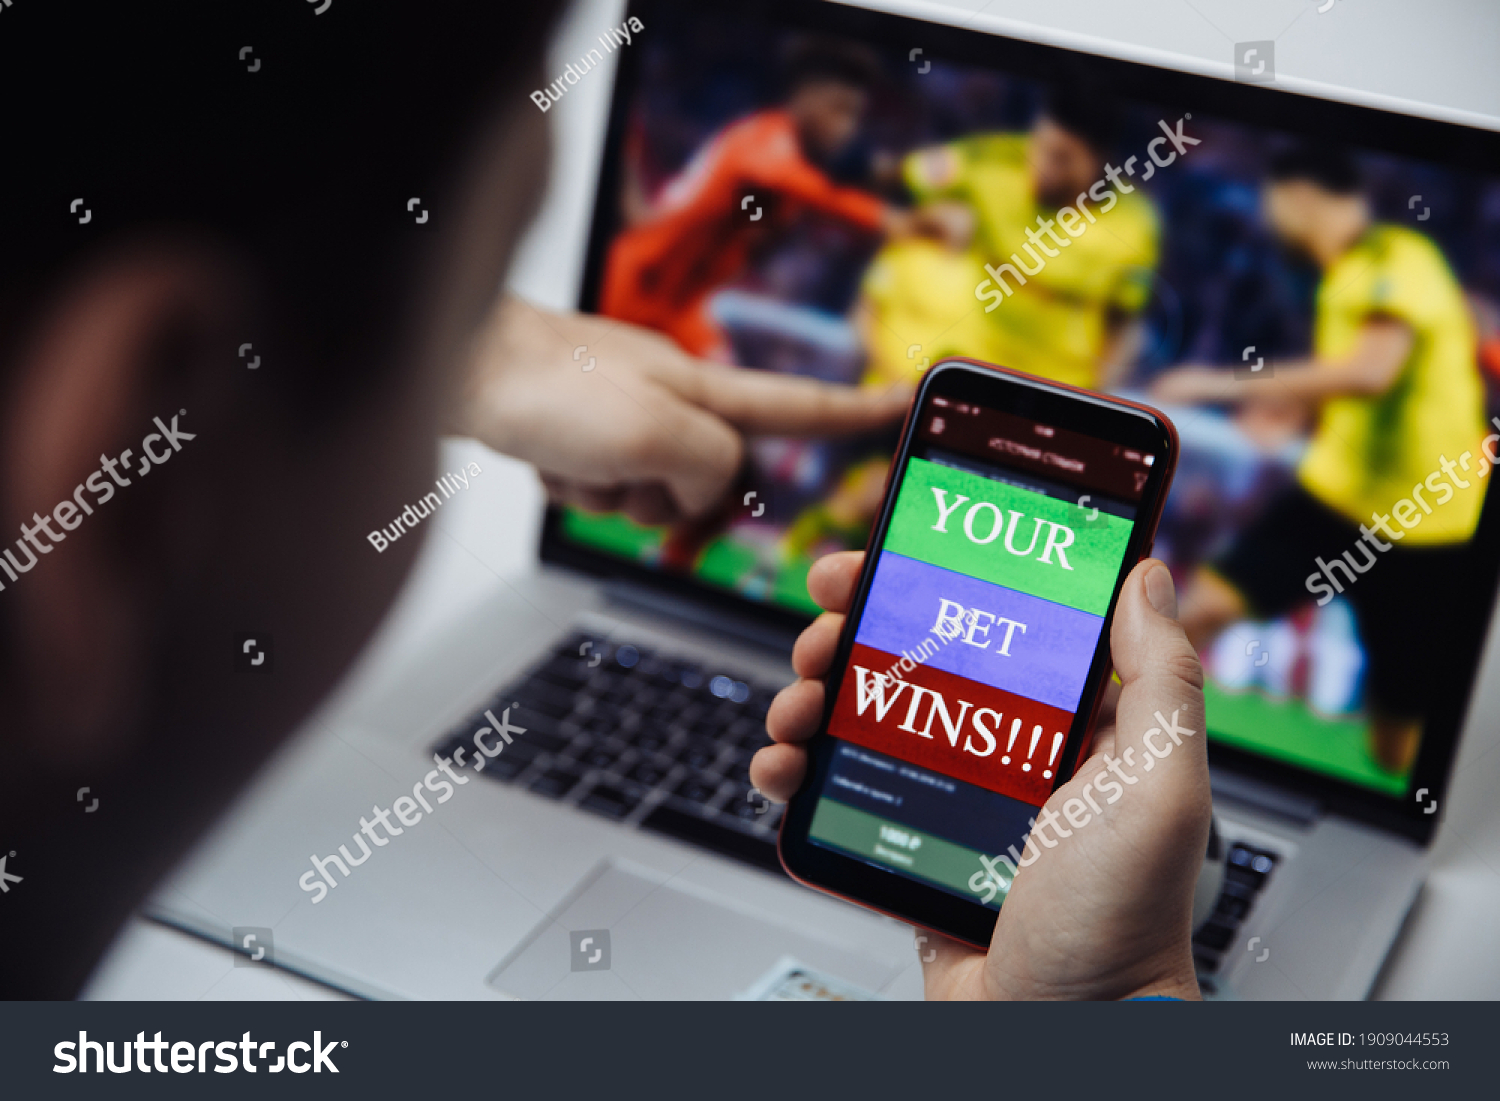 Man watching football online broadcast on his laptop and celebrate victory in betting at bookmaker's website. Betting and gambling concept #1909044553